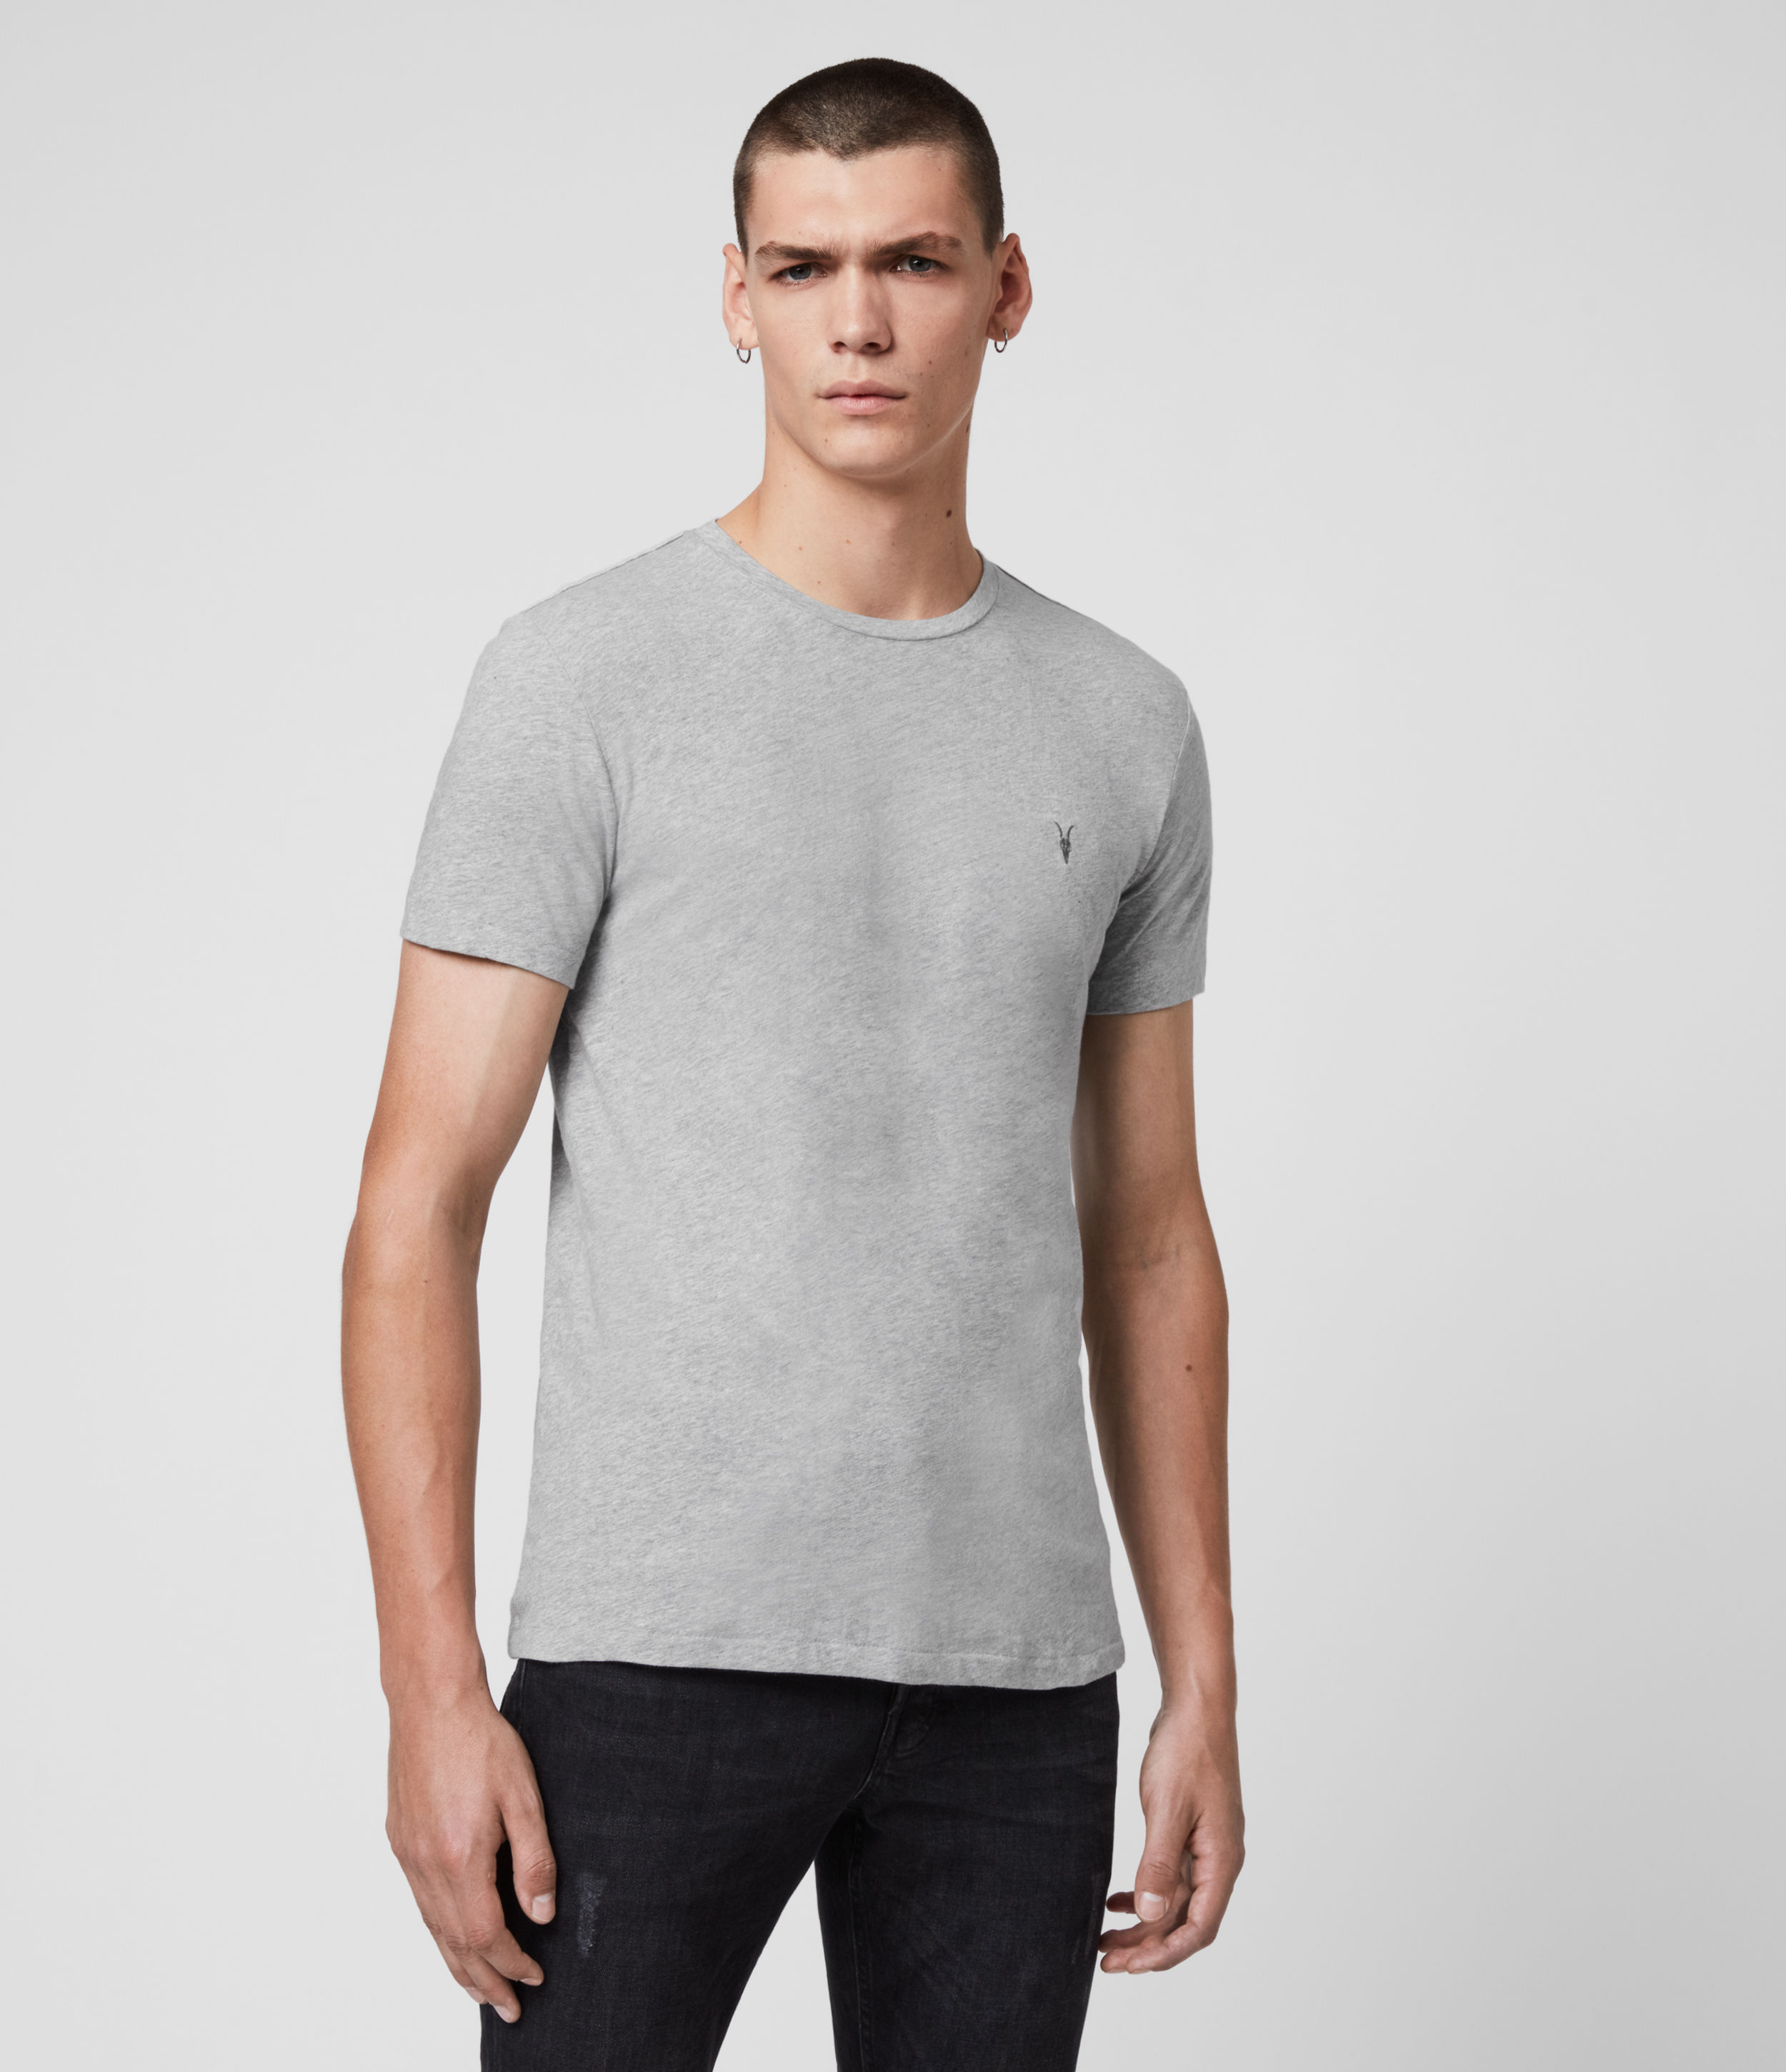 AllSaints Men's Cotton Regular Fit Tonic Crew T-Shirt, Grey, Size: XL